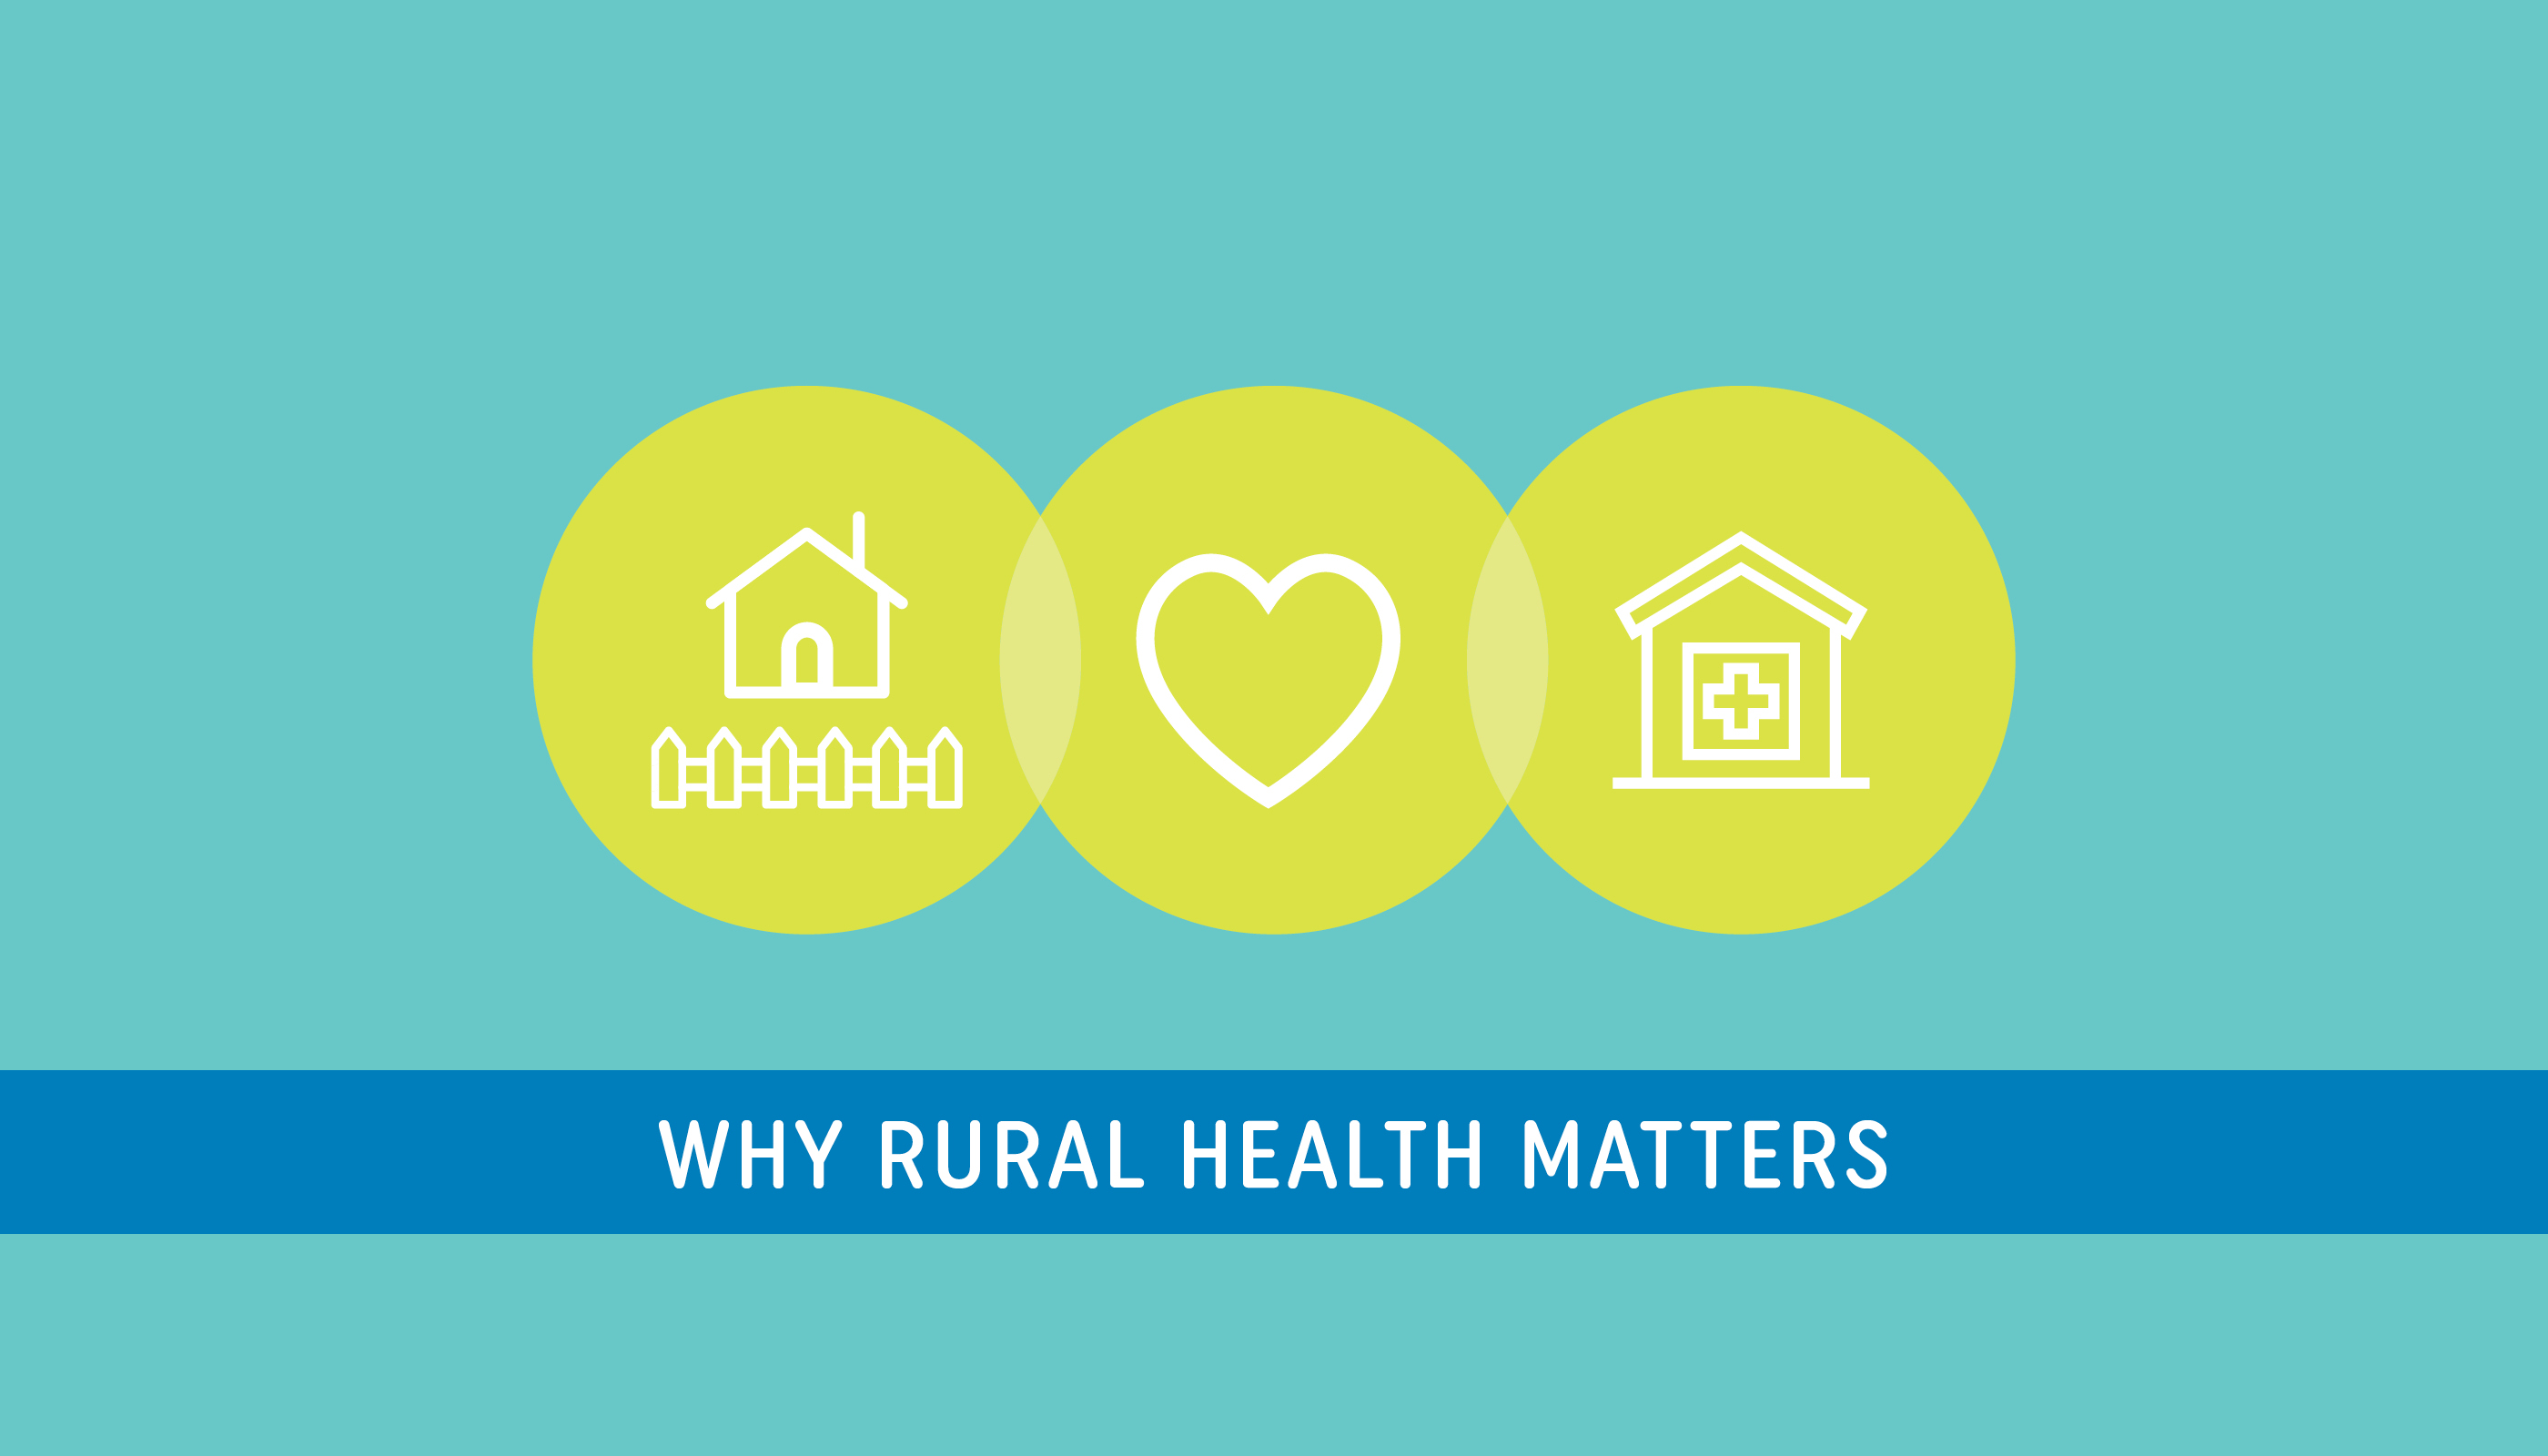 Why Rural Health Matters